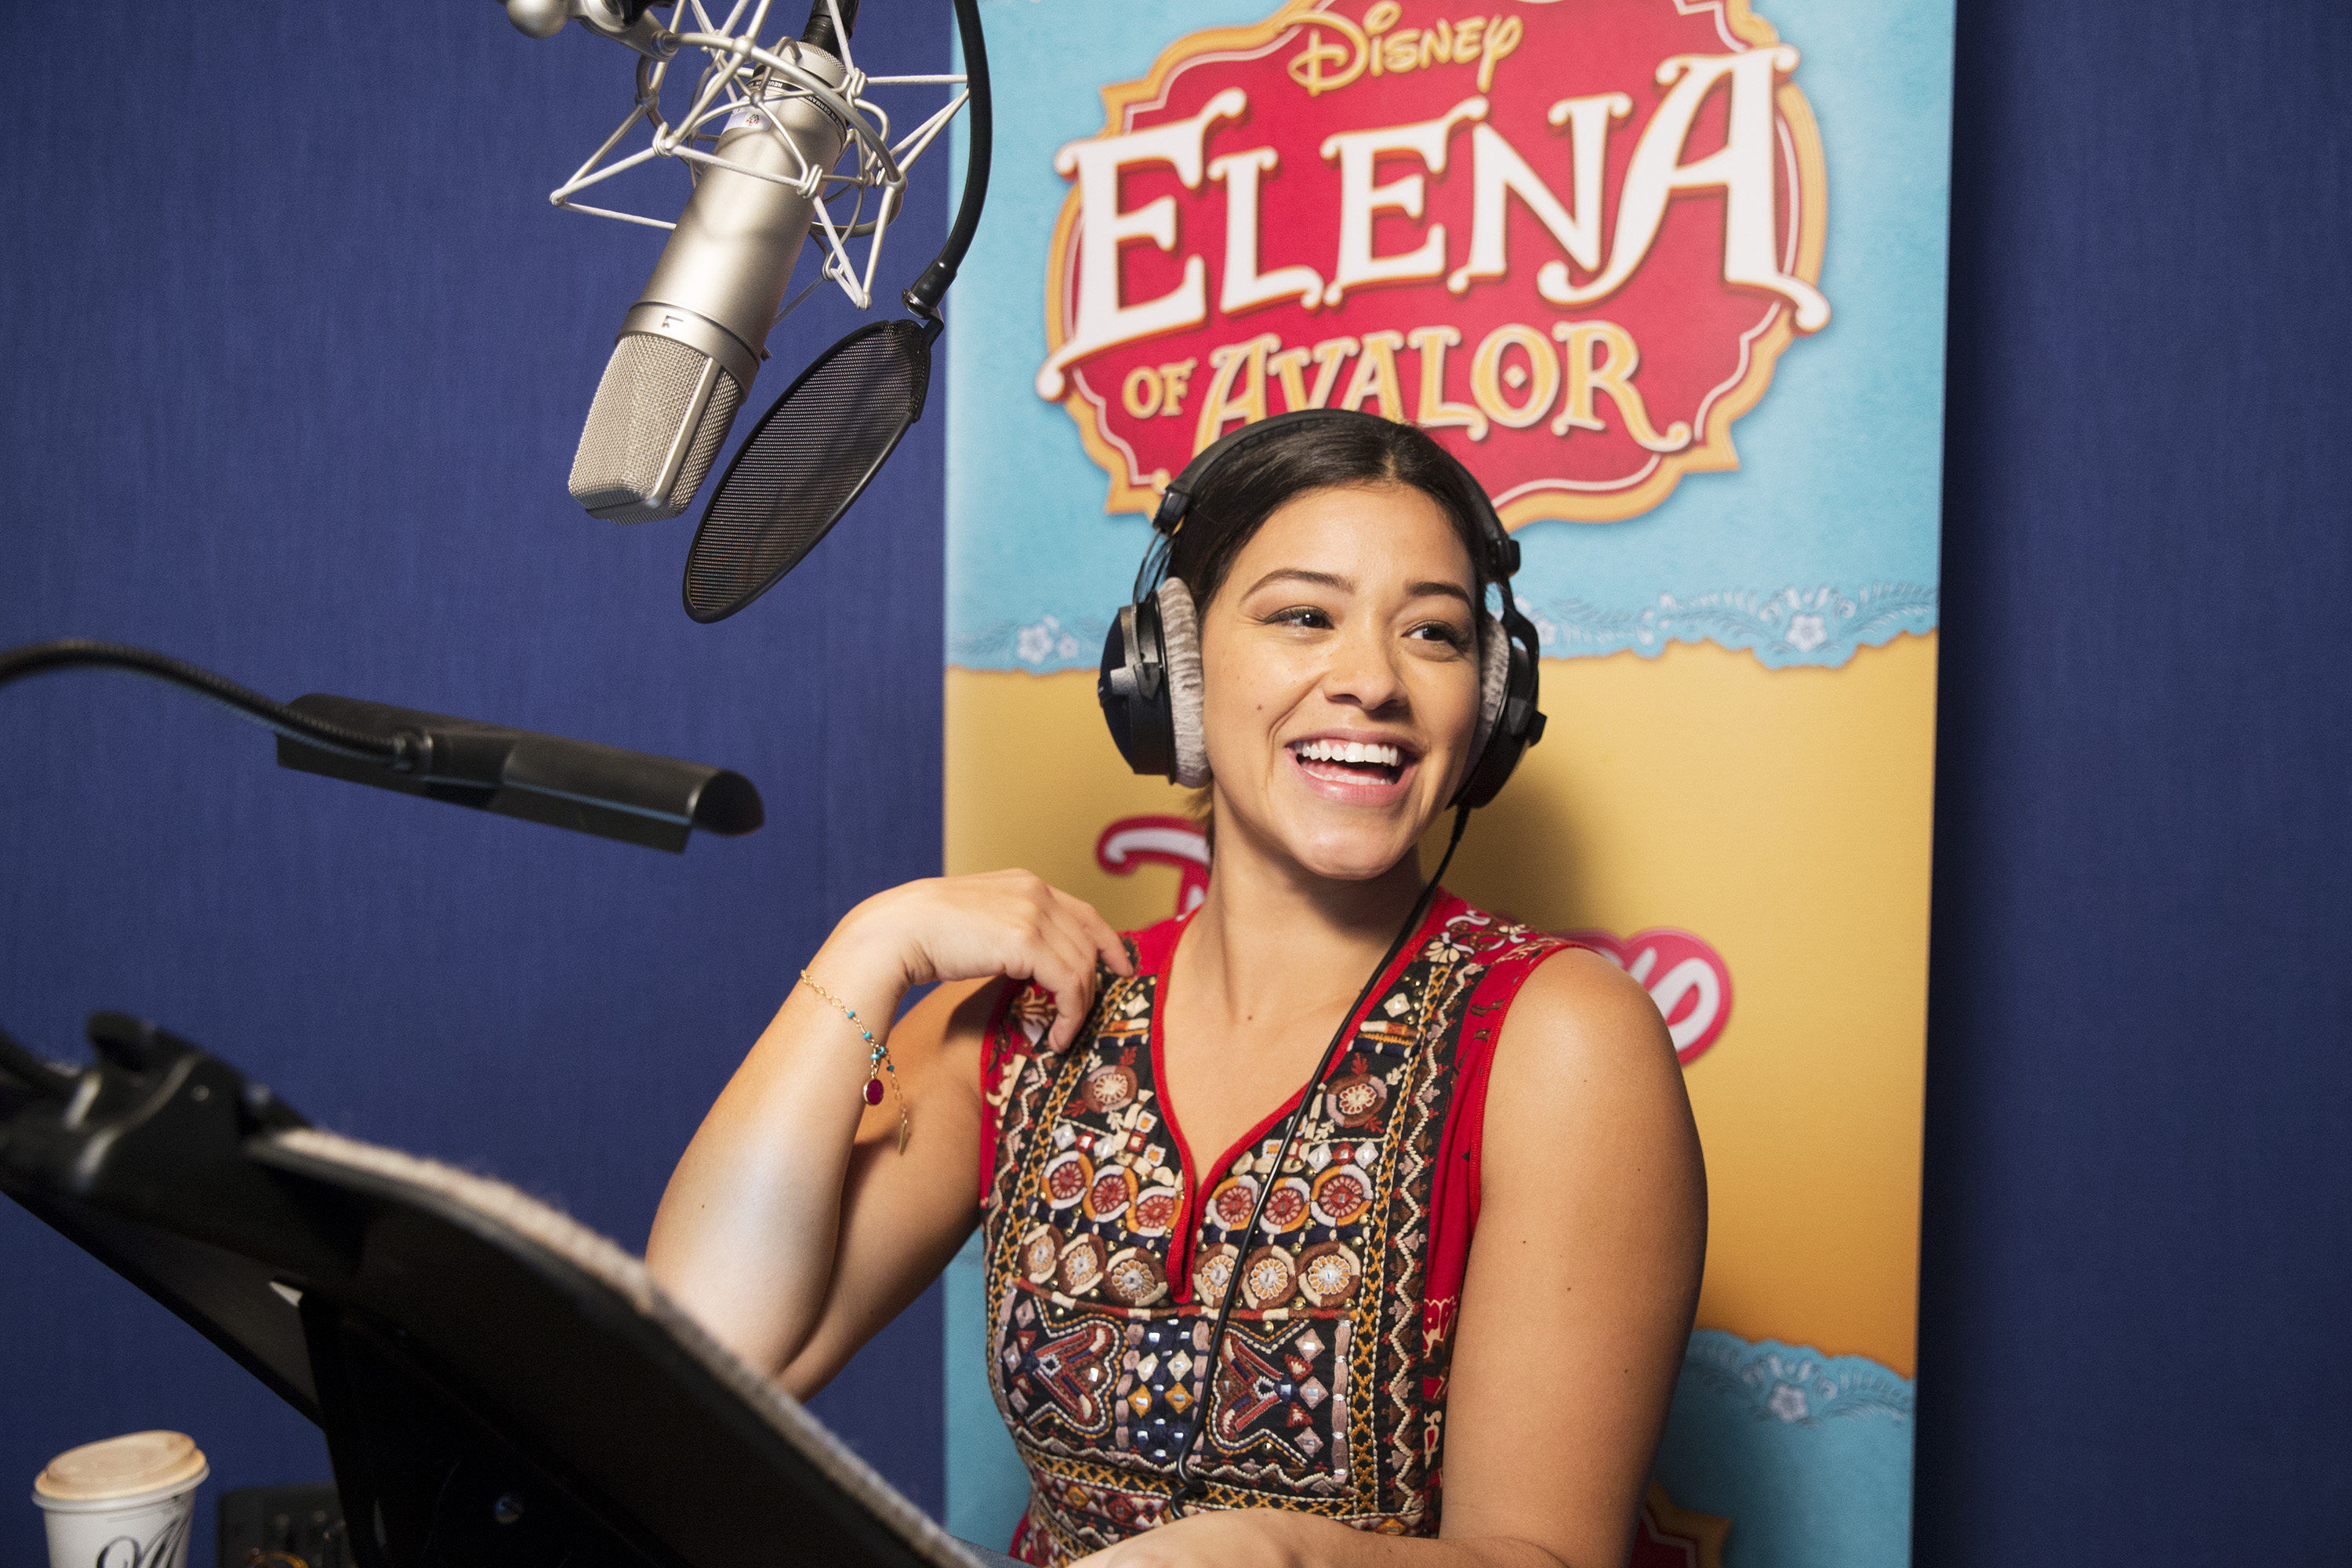 Edward James Olmos, Rita Moreno & Gina Rodriguez to Guest Star in 'Elena of Avalor' Movie